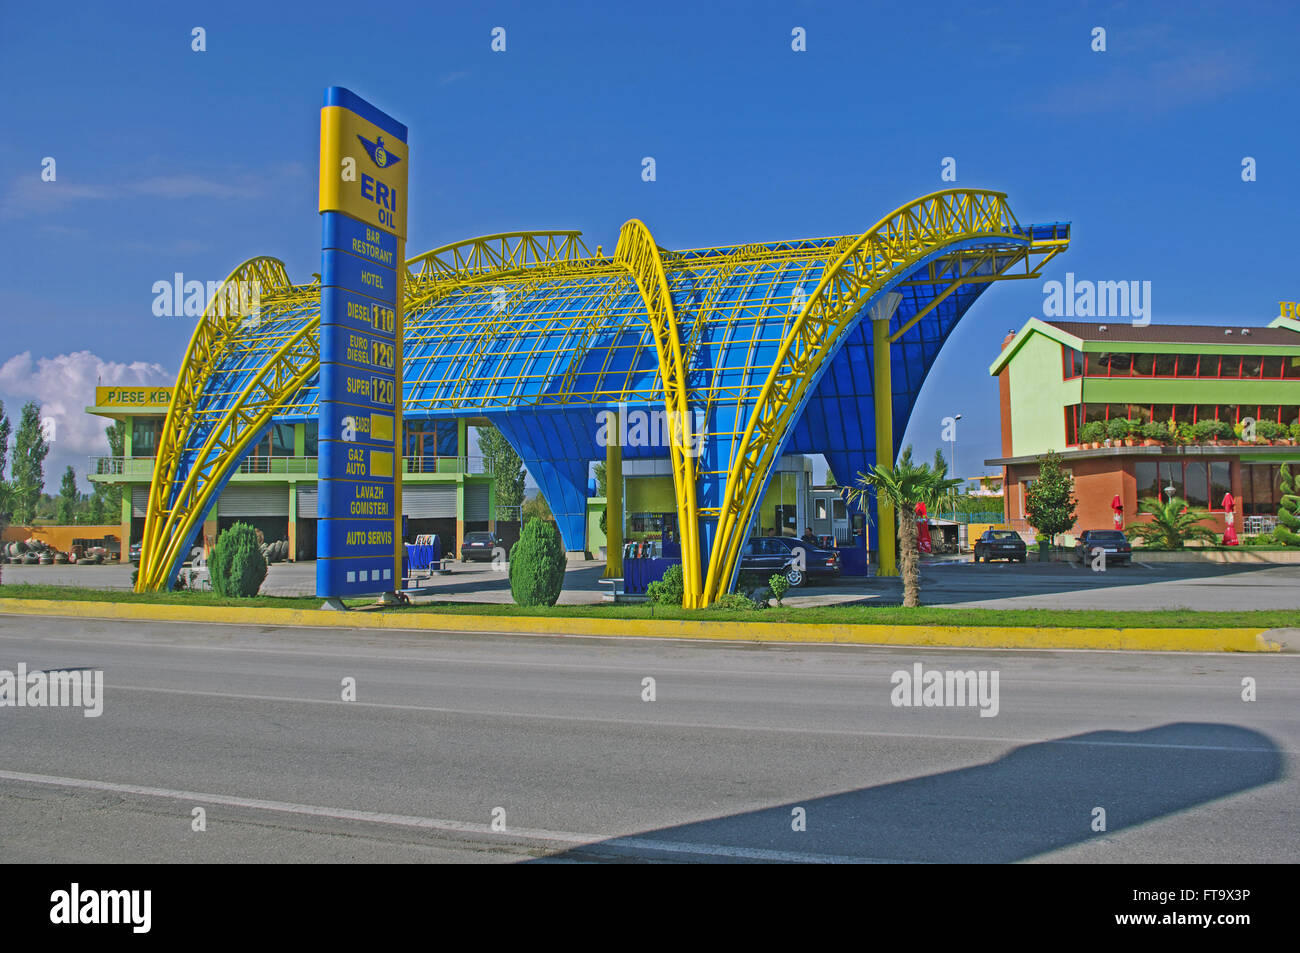 Petrol Station from Durres. on E762 Road, Albania - Stock Image